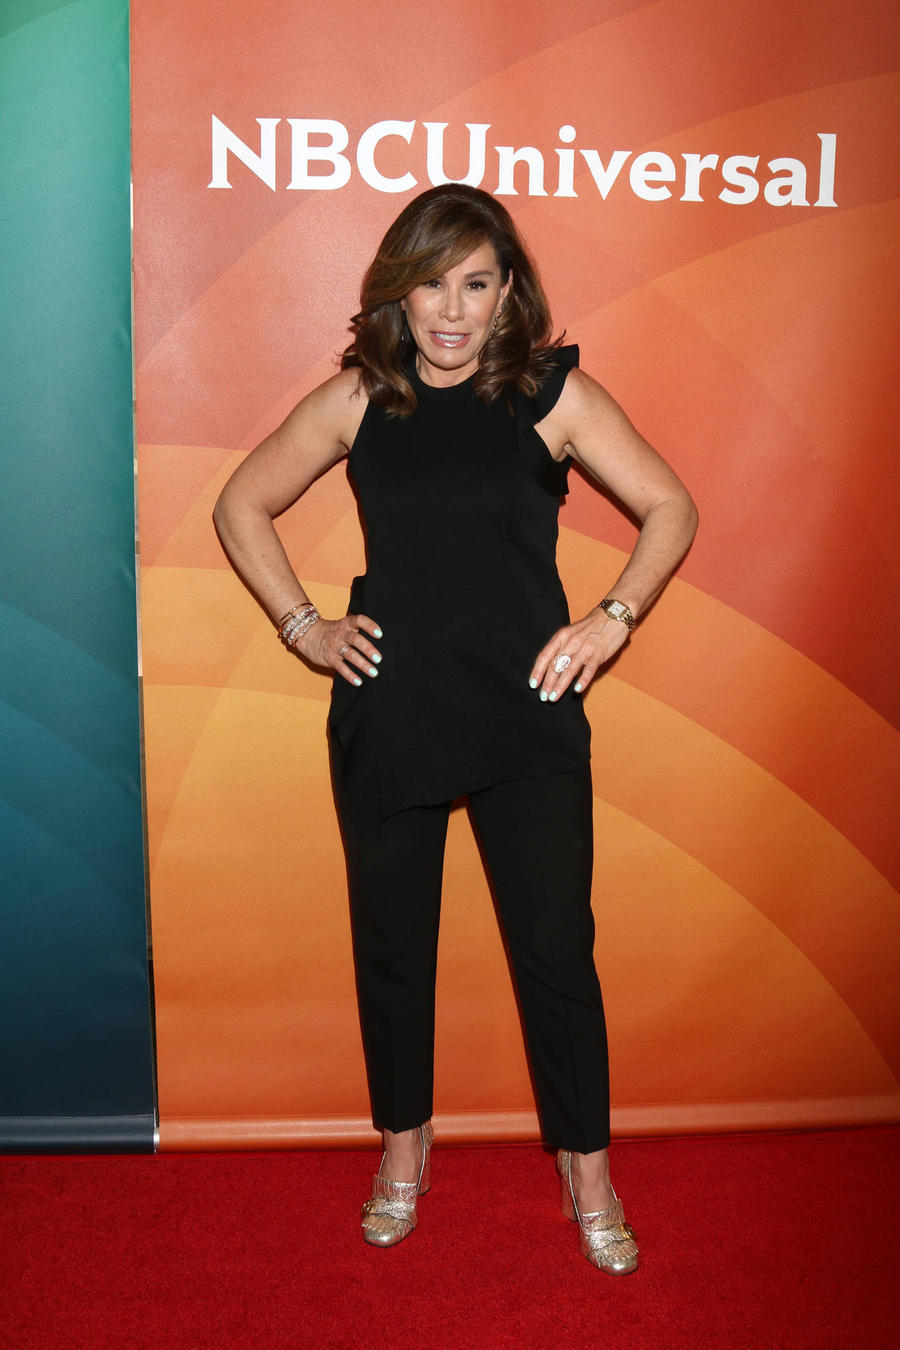 Melissa Rivers Working To Ensure Higher Surgical Safety Standards